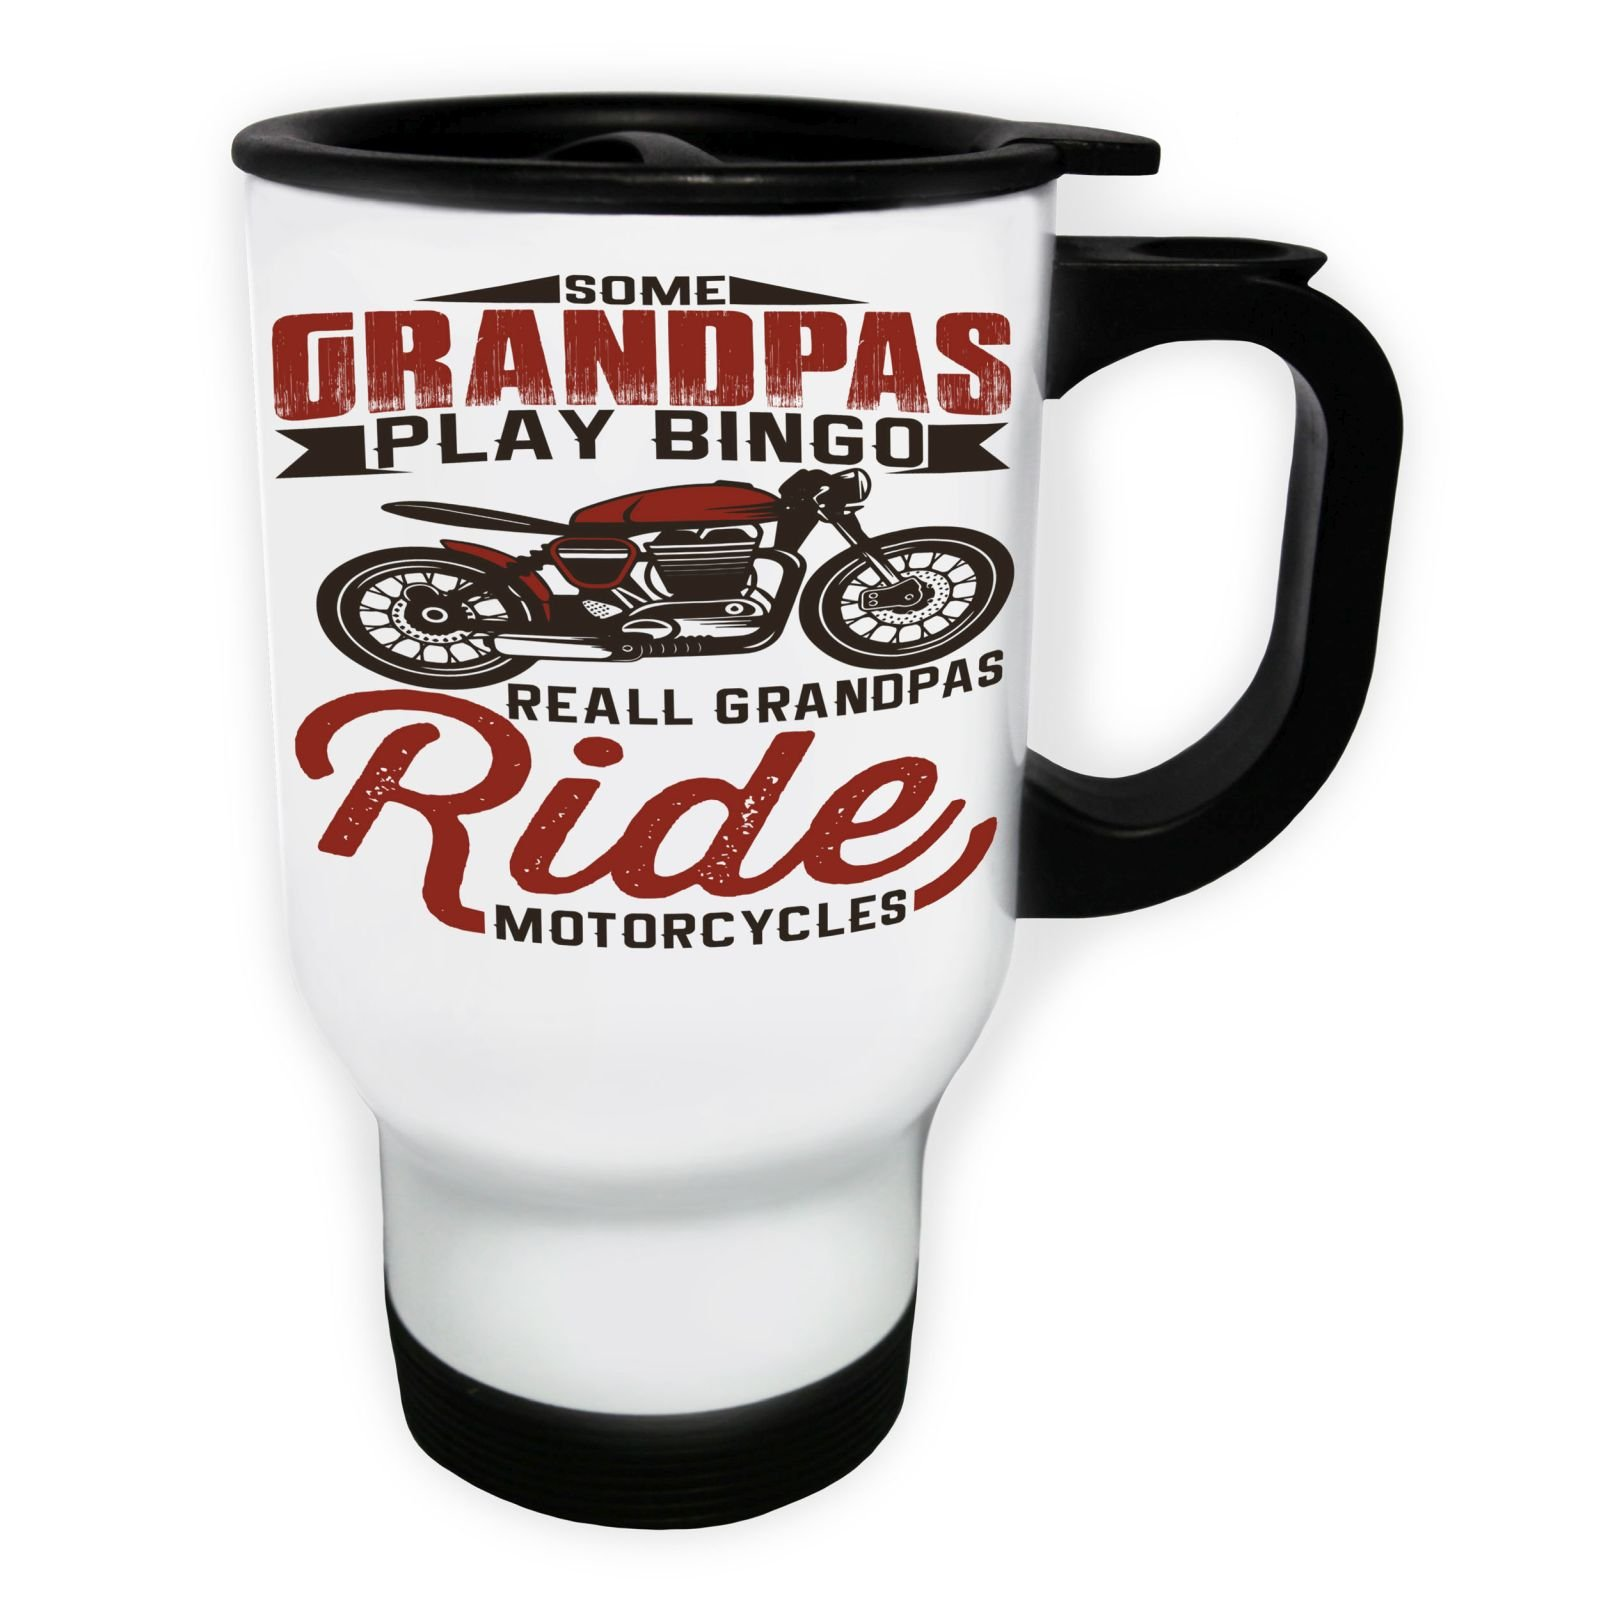 Some Grandpas Play Bingo Motorcycle White Thermo Travel Mug 14oz v815tw by INNOGLEN